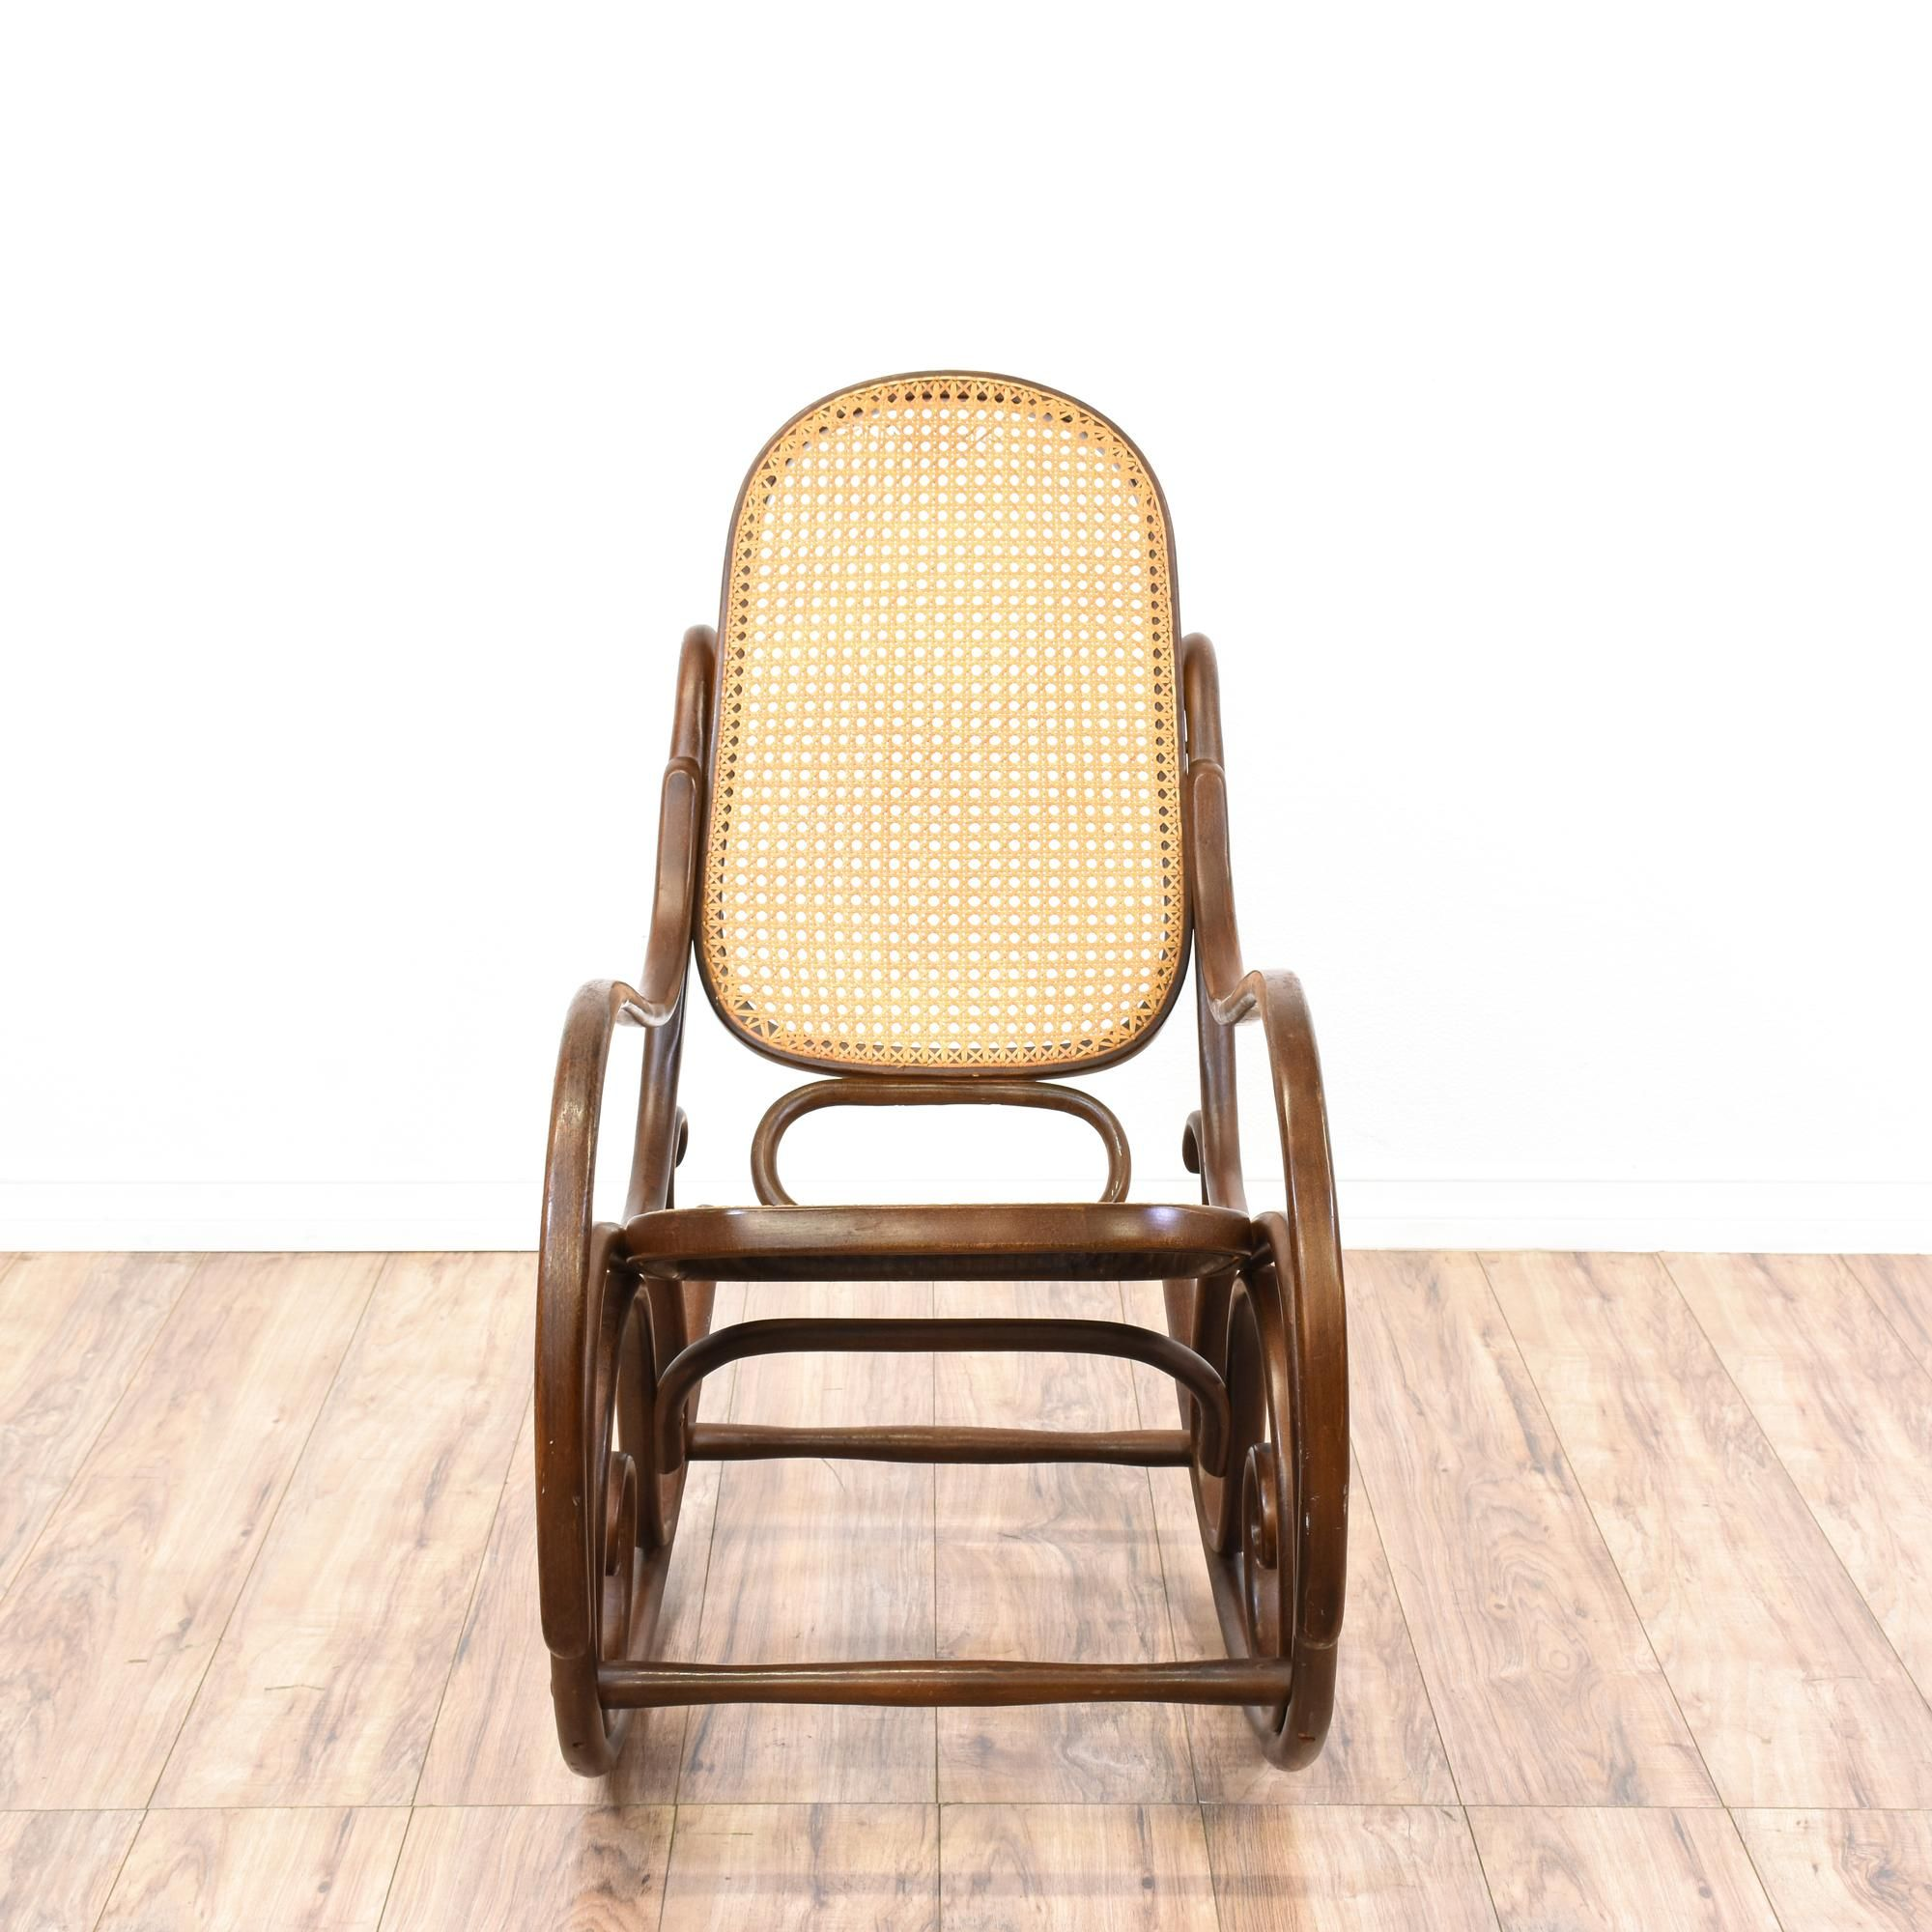 This rocking chair is featured in a solid wood with a glossy